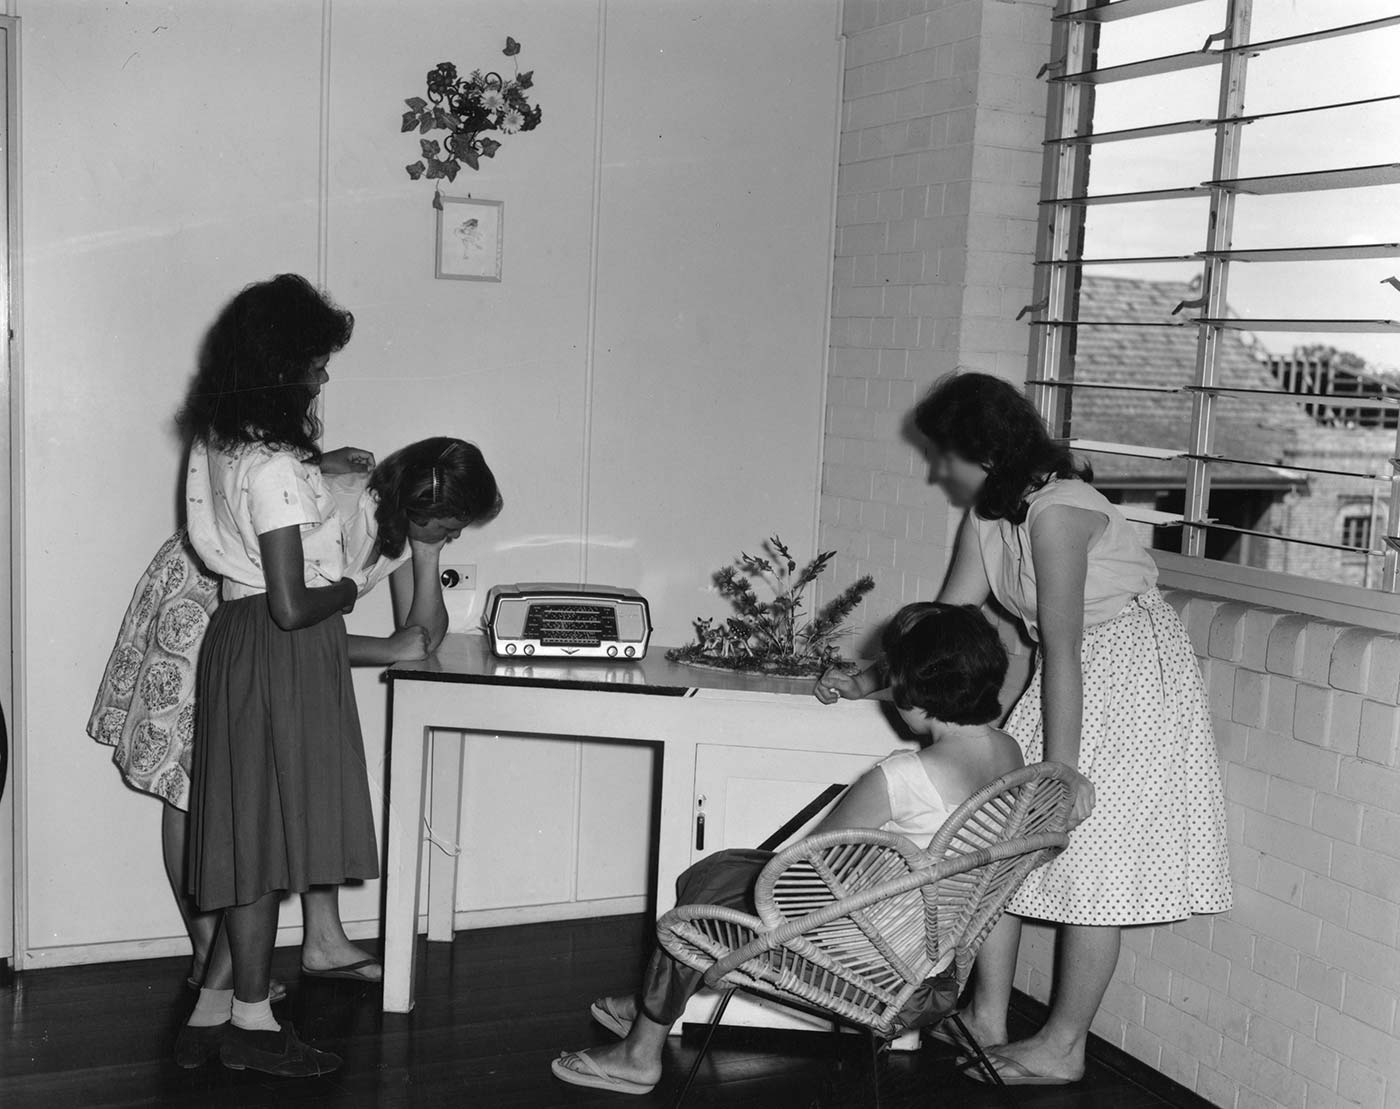 Black and white photo showing four teenage girls gathered around a small radio which sits on a table. Three of the girls are standing, one sits in a low chair. - click to view larger image